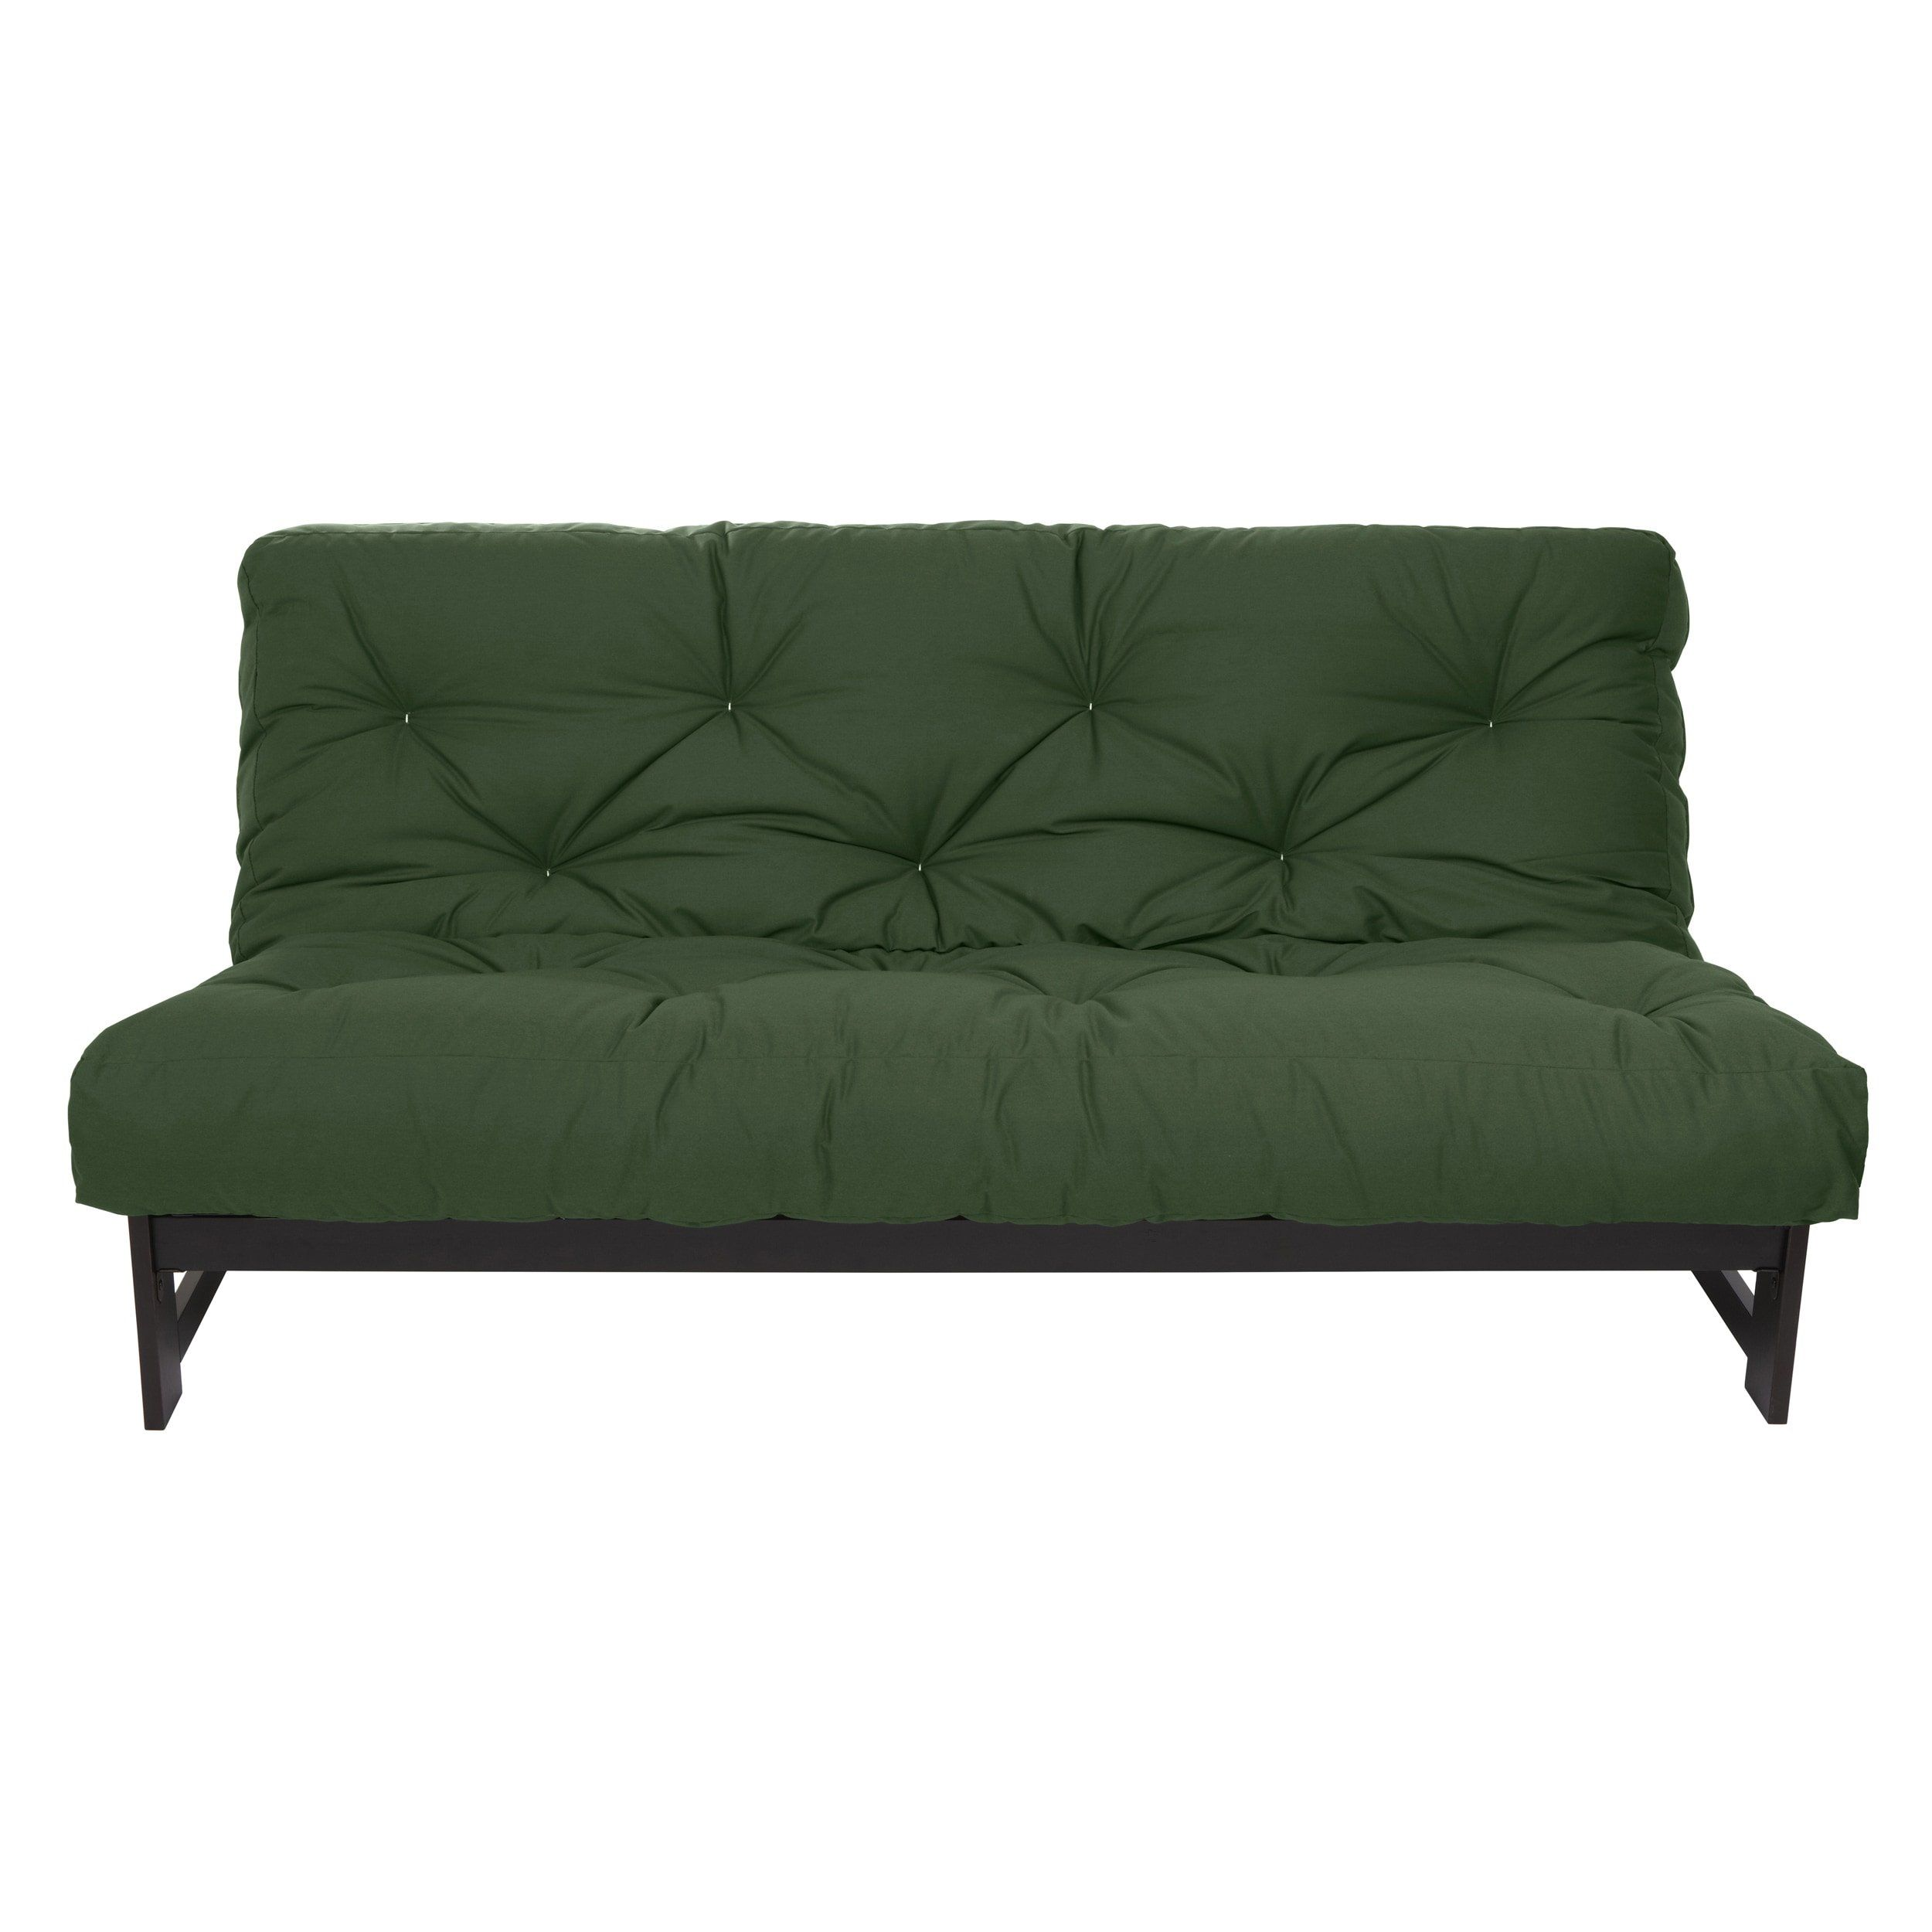 mozaic company queen size hunter green 10inch dual gel futon